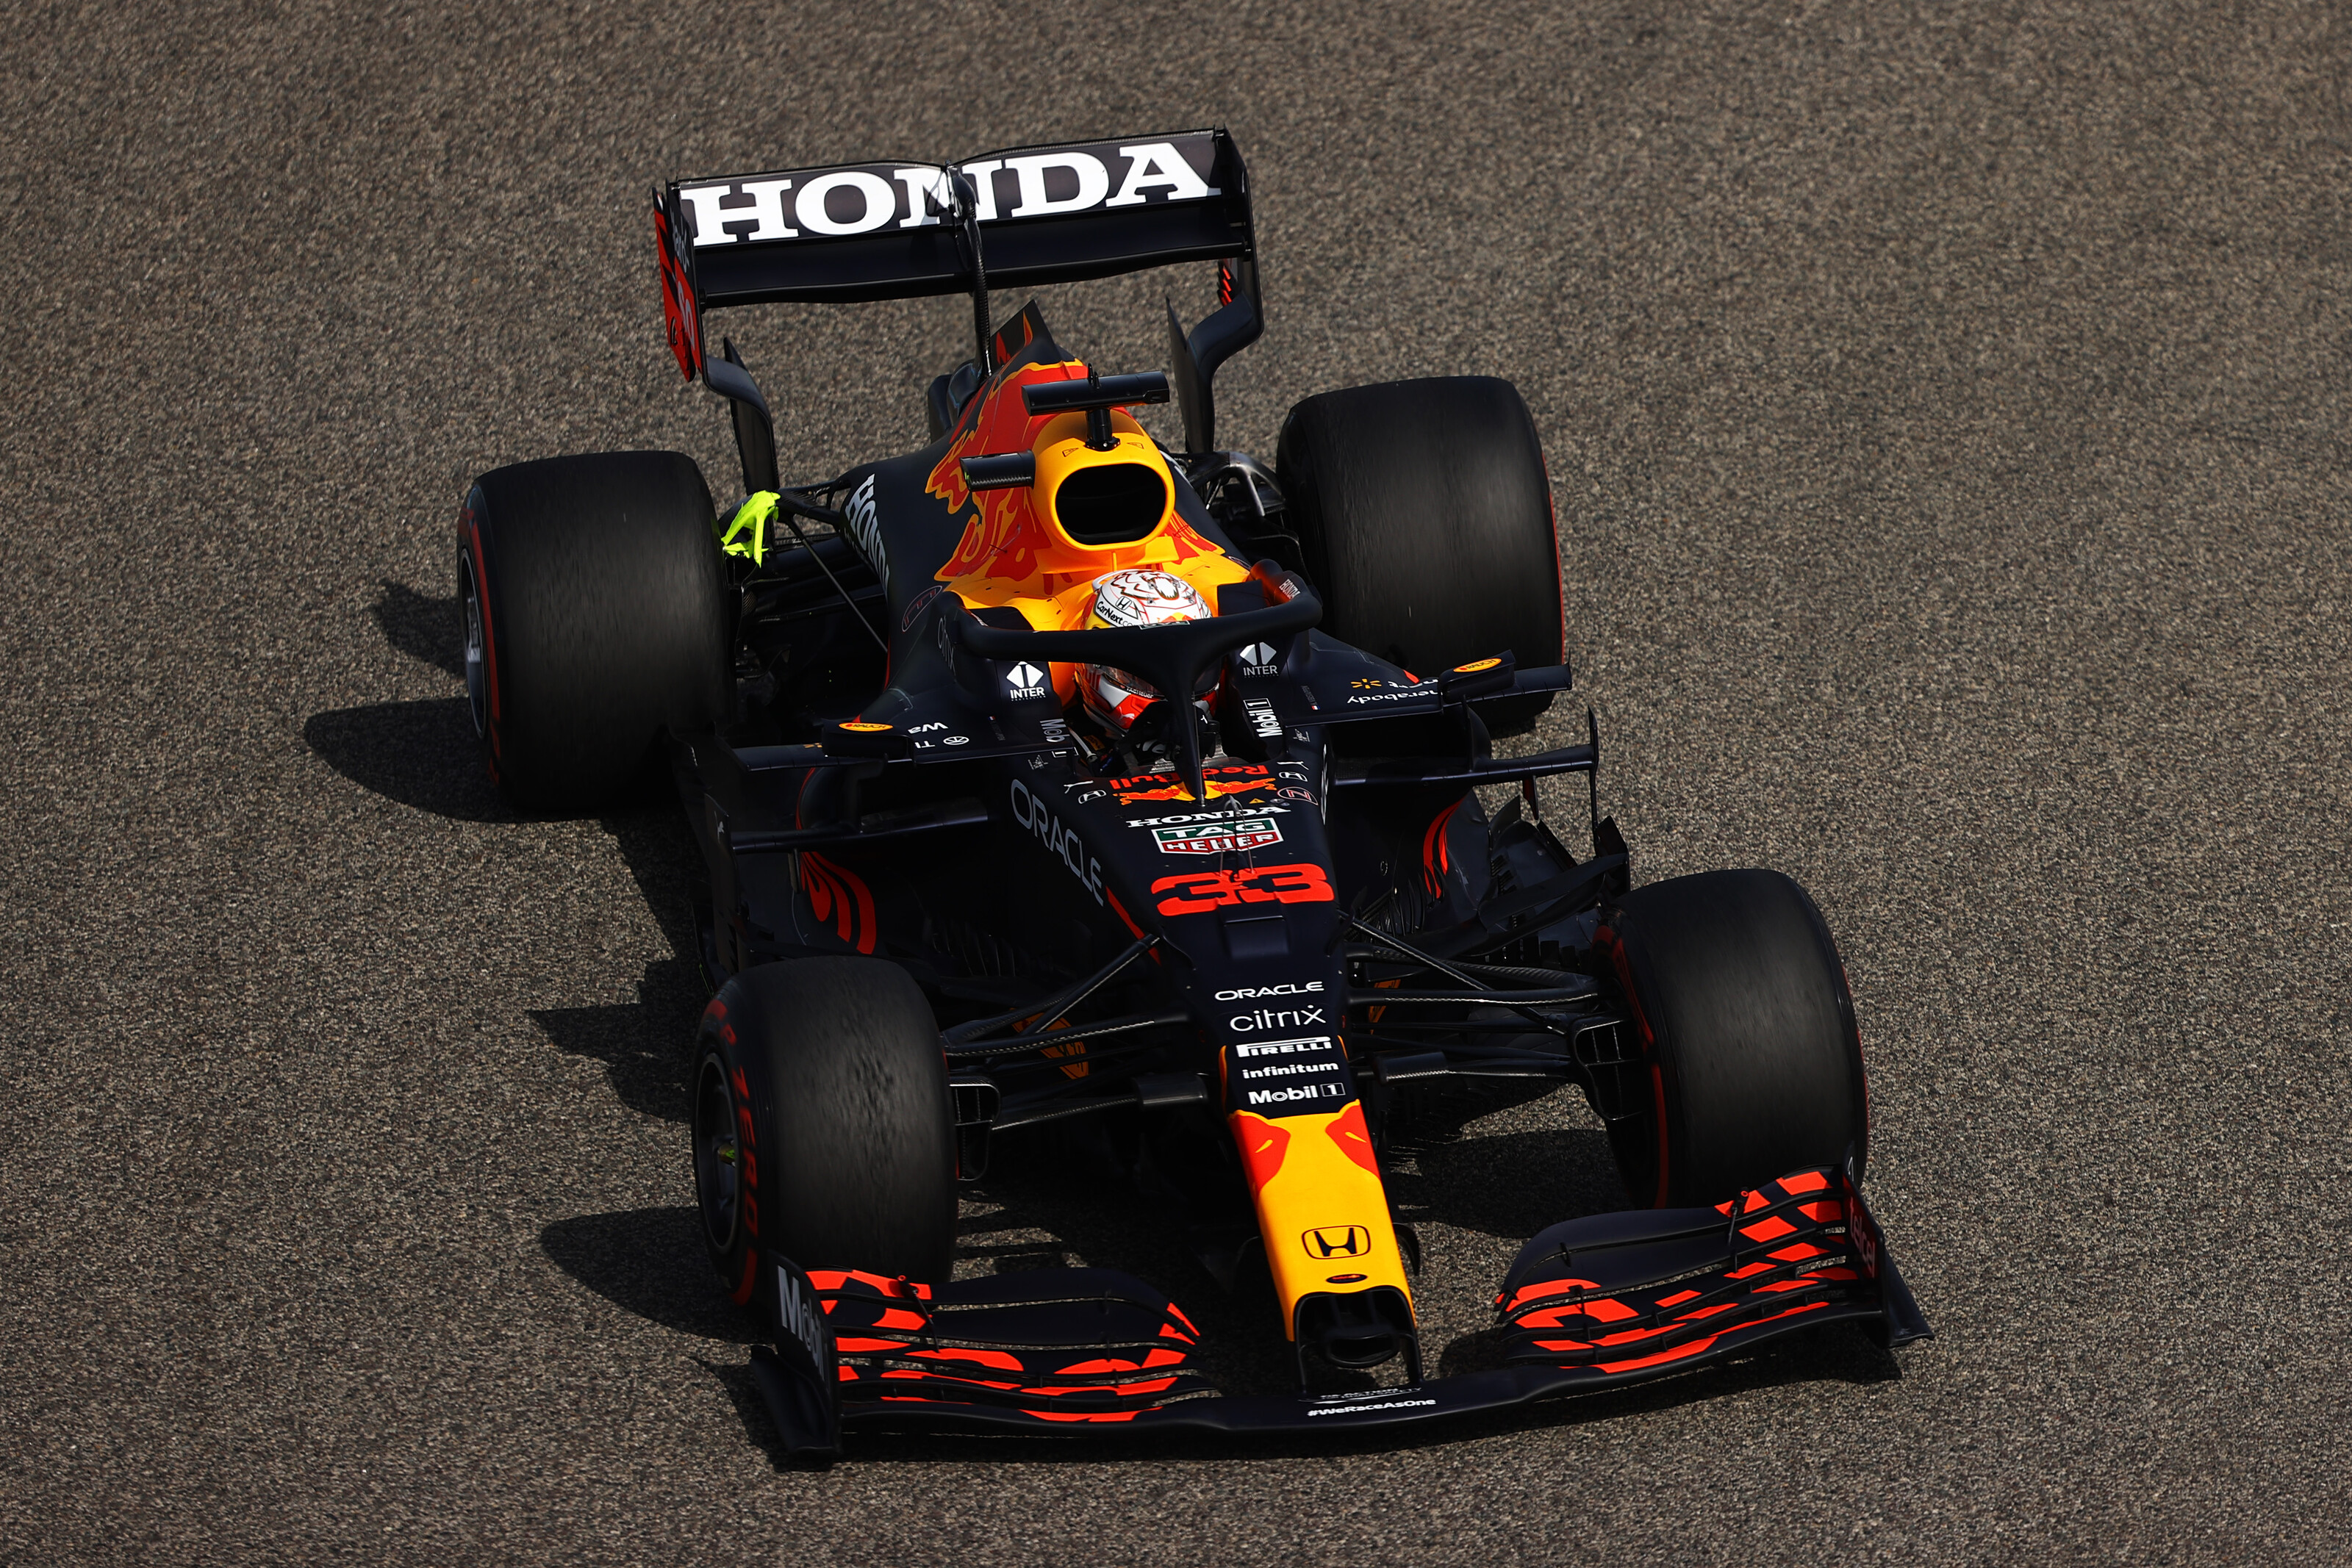 Max Verstappen tijdens de vrije training in Bahrein (Bron: Getty Images / Red Bull Content Pool)